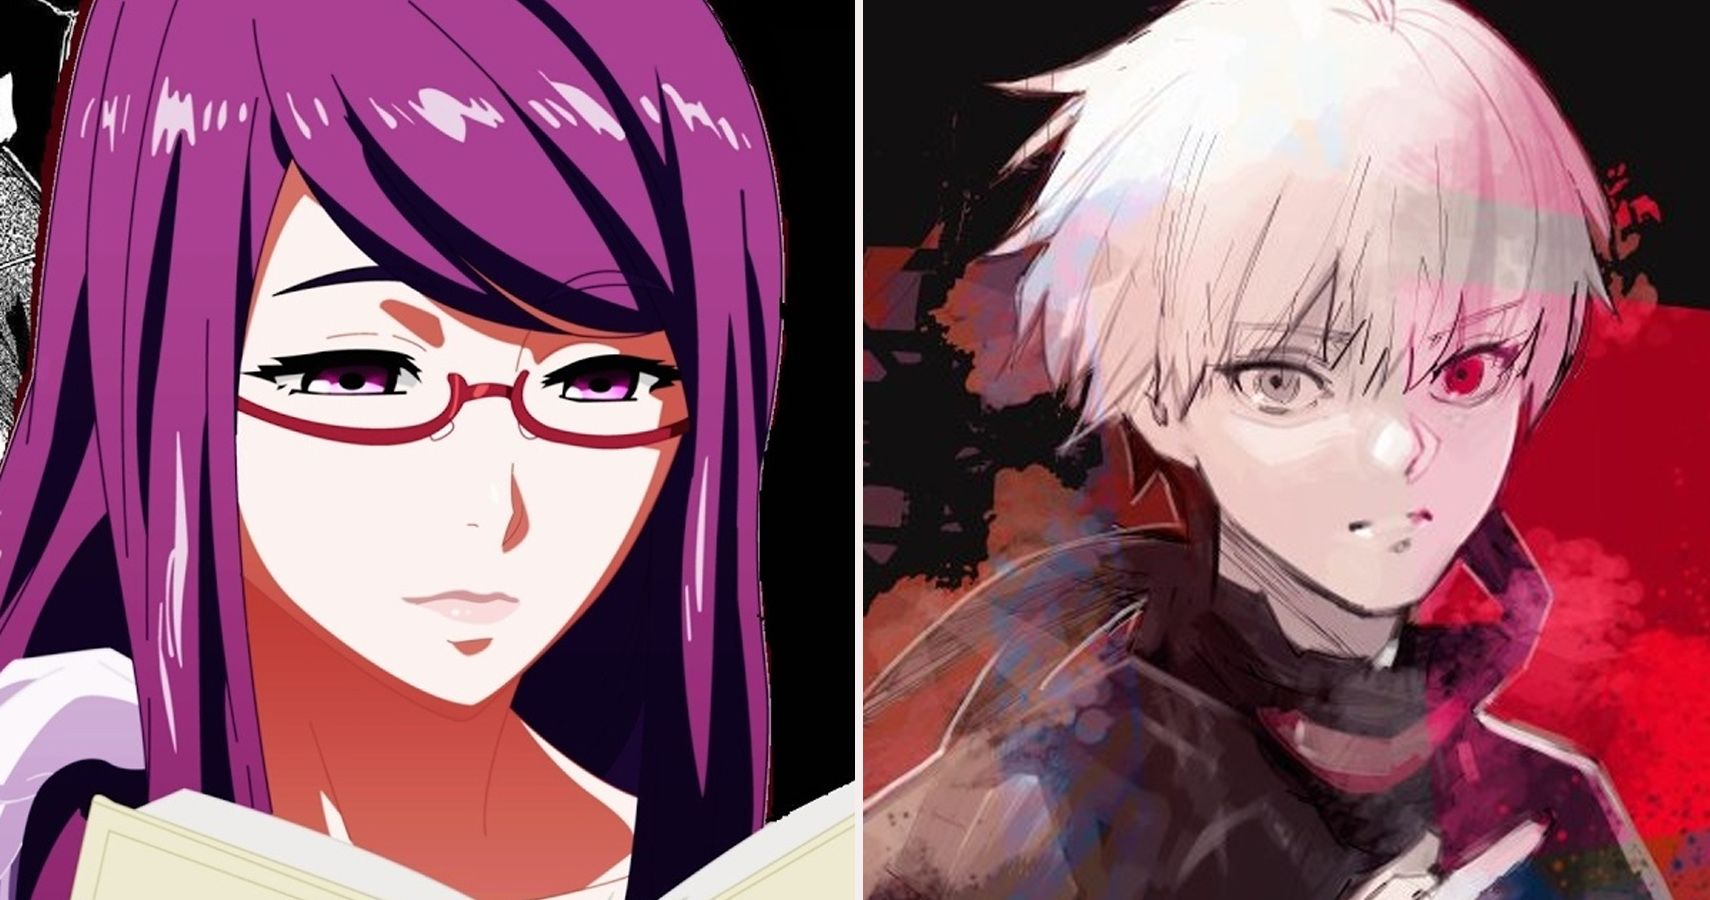 Tokyo Ghoul 10 Differences Between The Anime And Manga Cbr